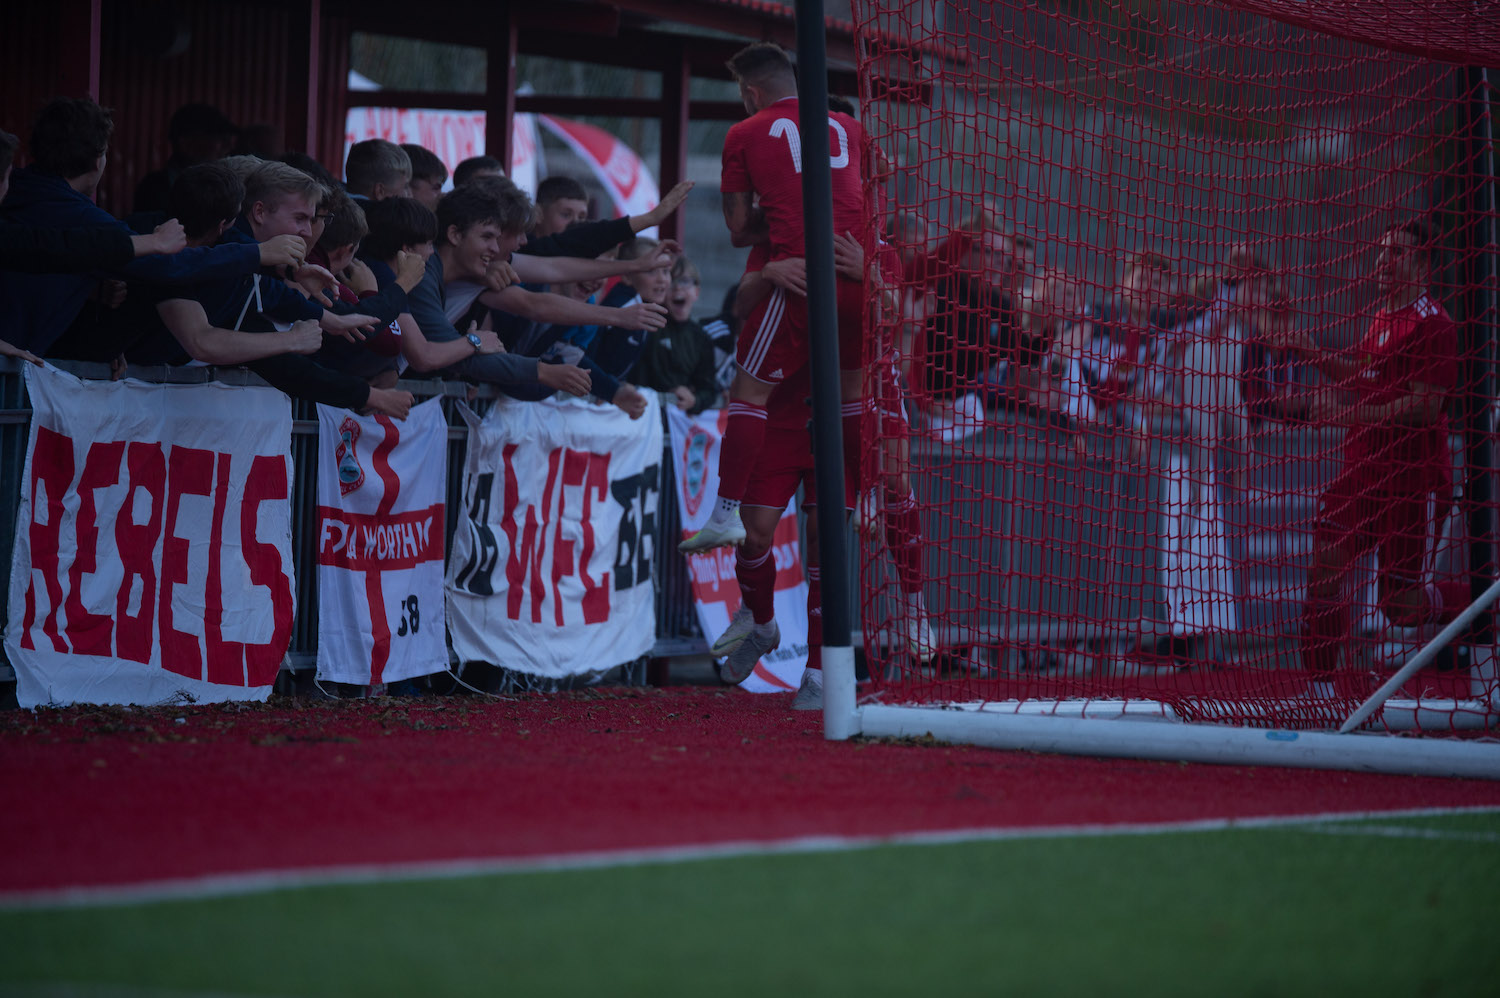 Read the full article - Marvellous Marvin sends Reds to St Albans